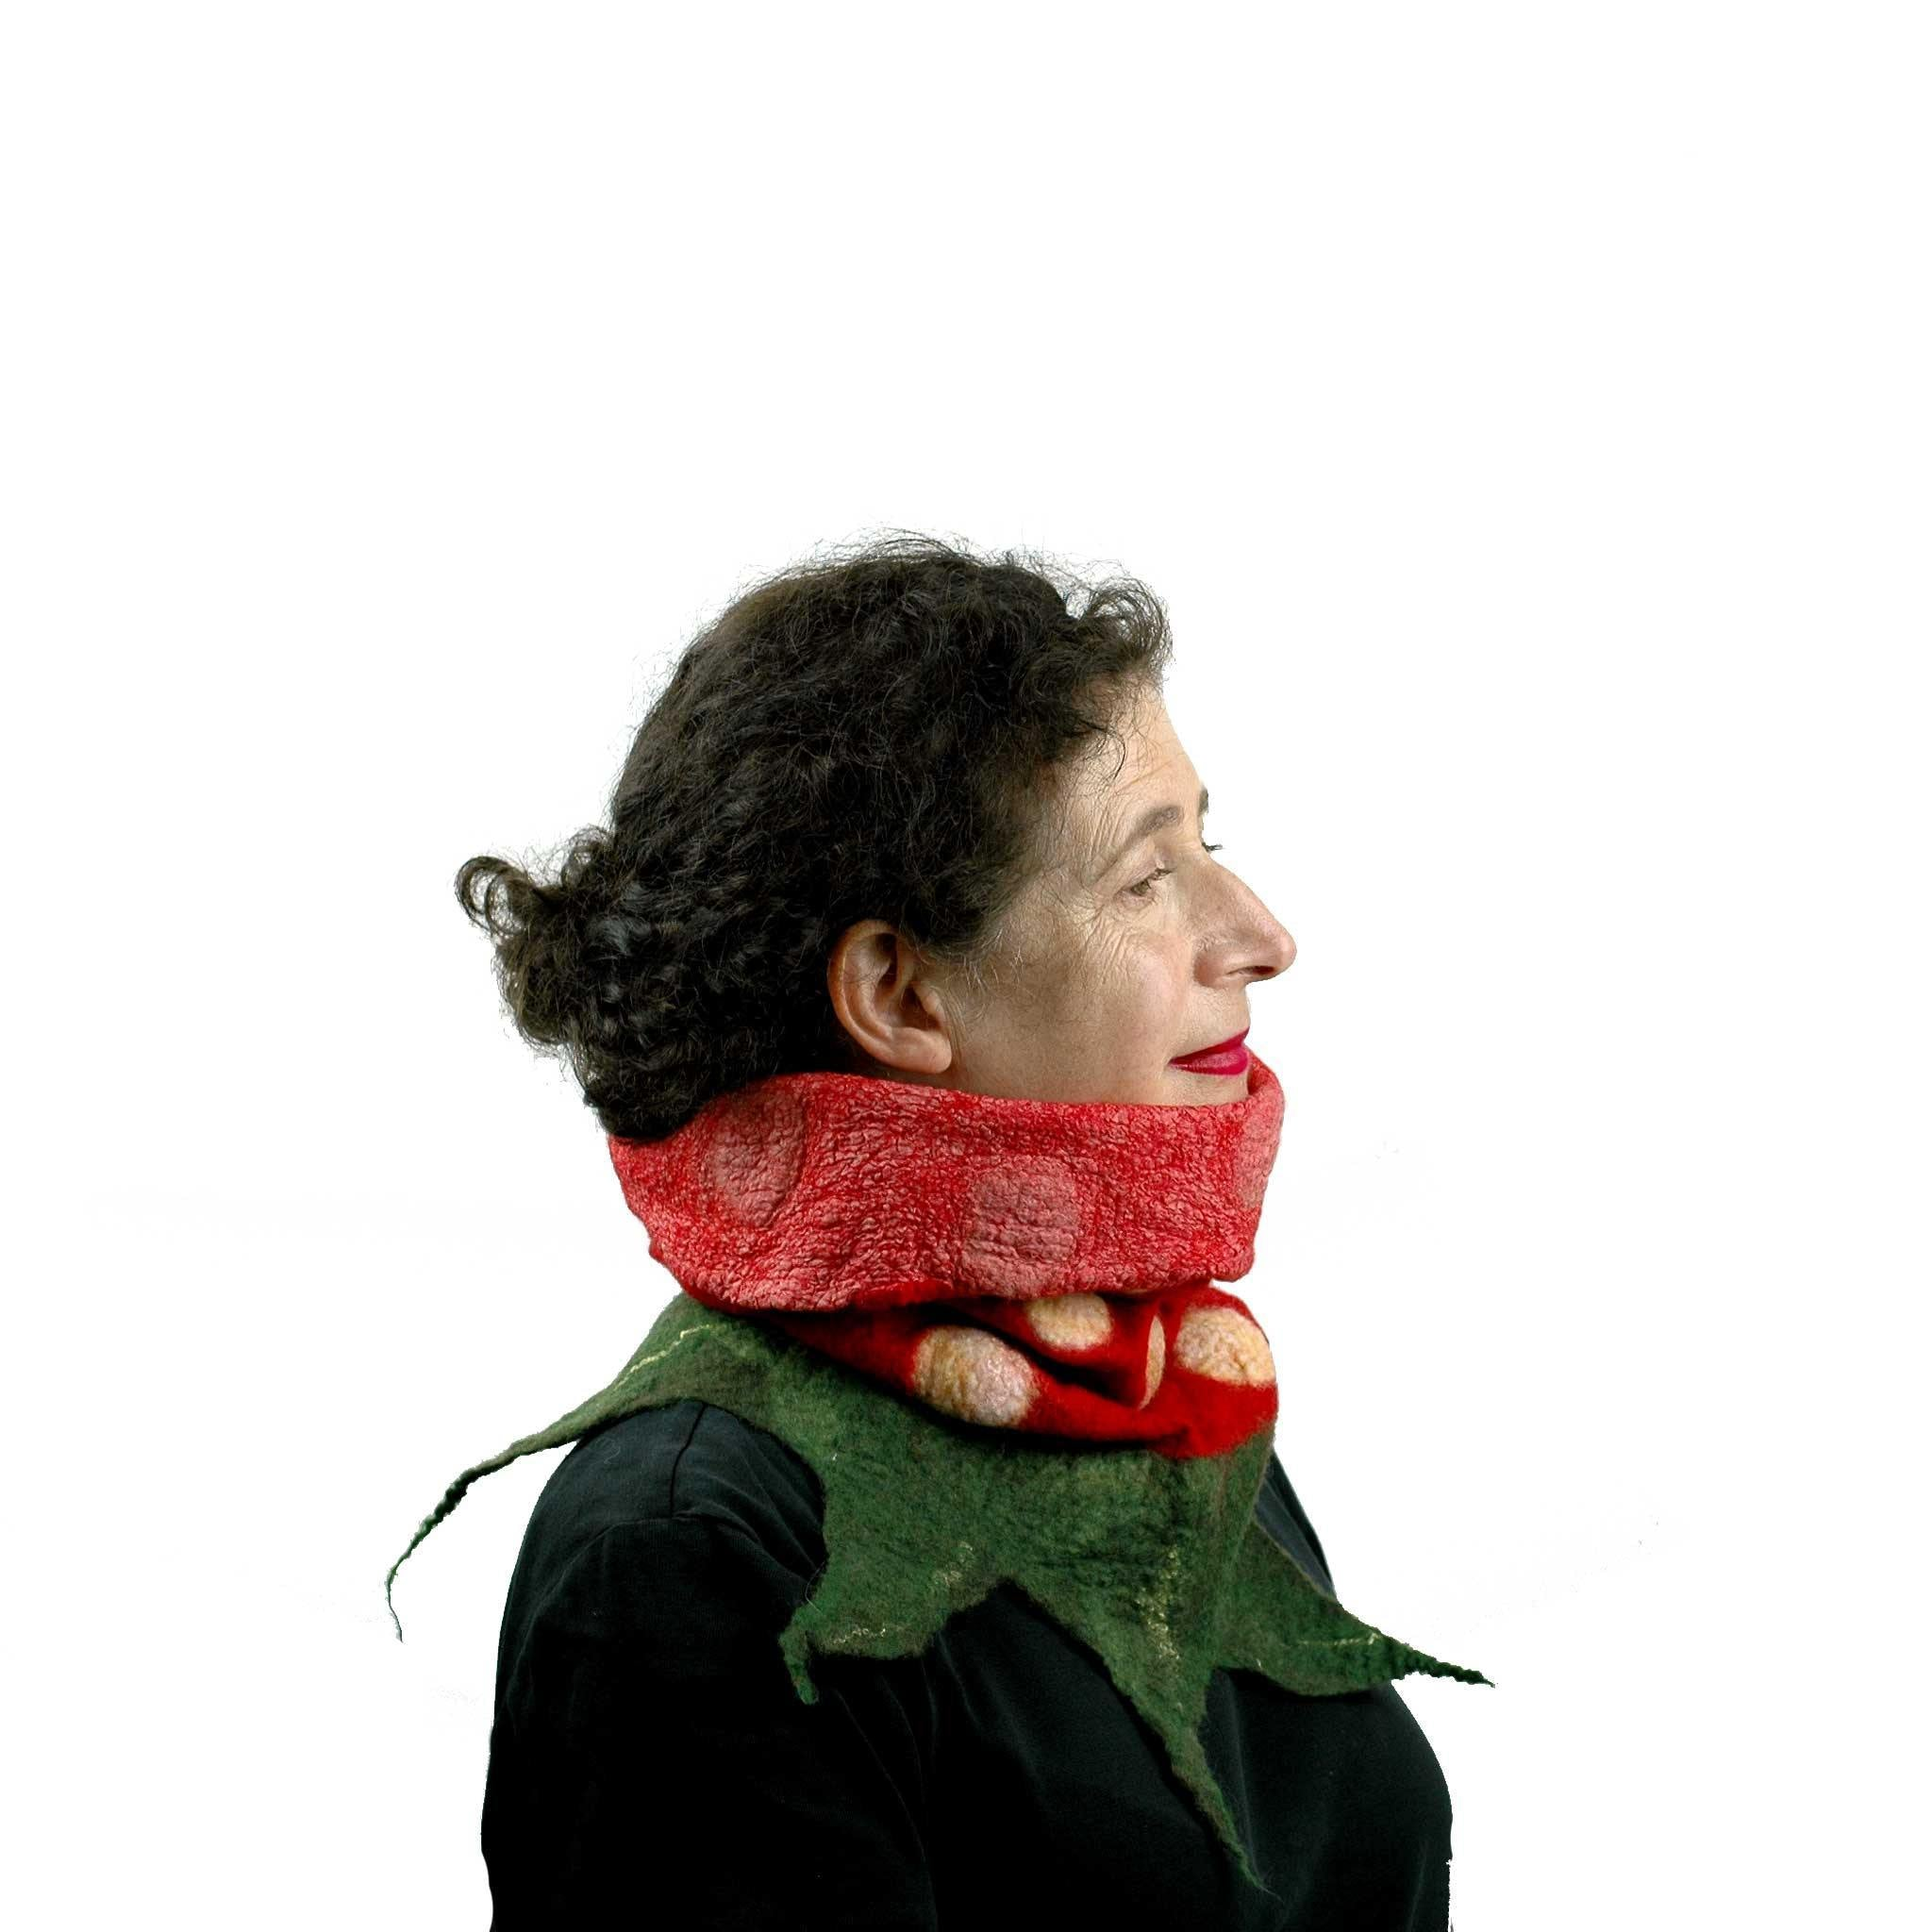 Nunofelted Strawberry Neck Warmer Headscarf - with top folded down.